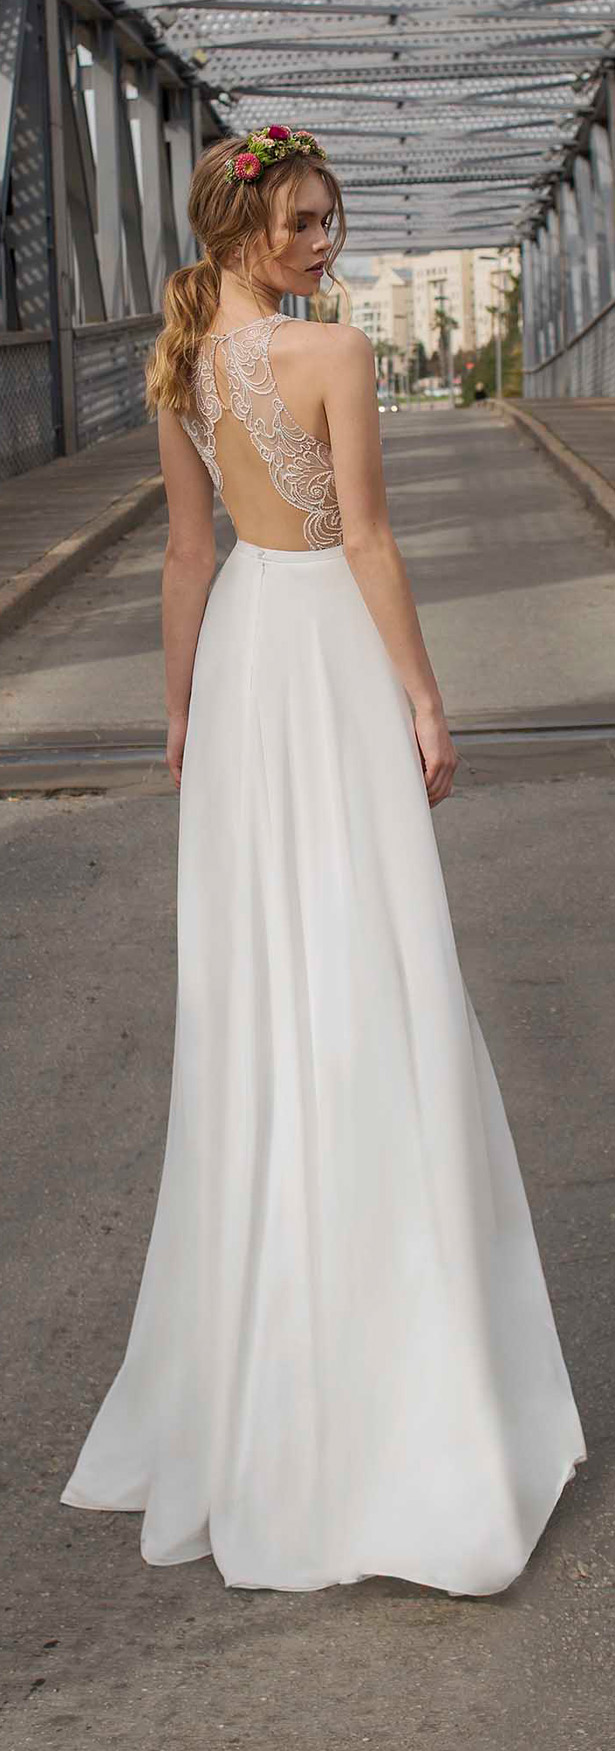 Best wedding dresses of 2015 belle the magazine for Best wedding dresses for petites